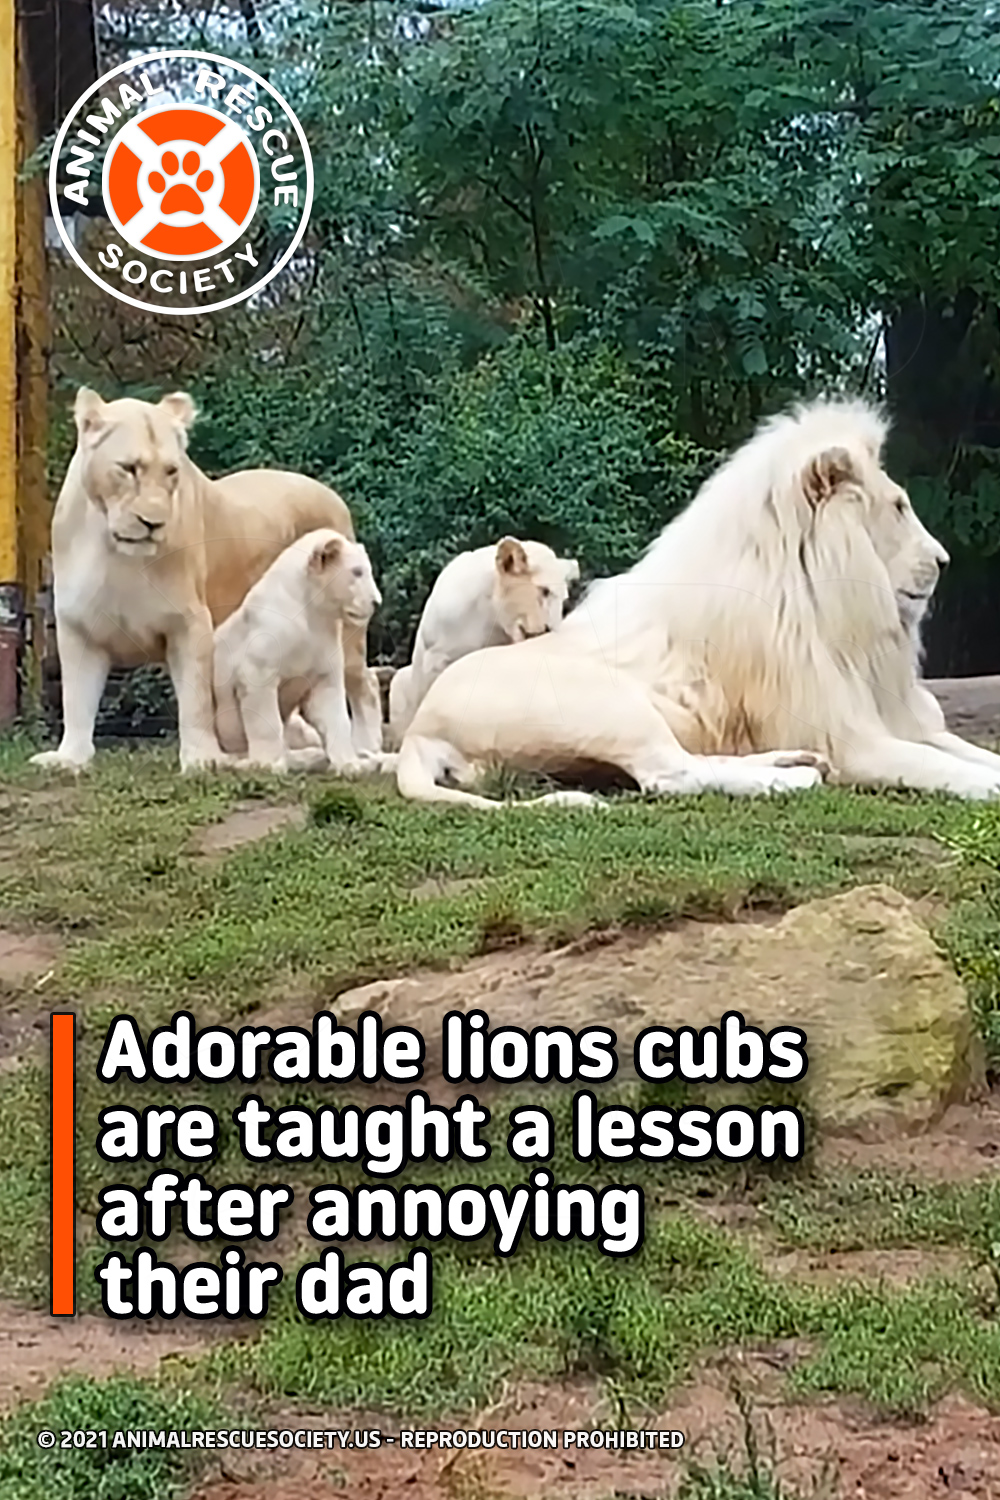 Adorable lions cubs are taught a lesson after annoying their dad